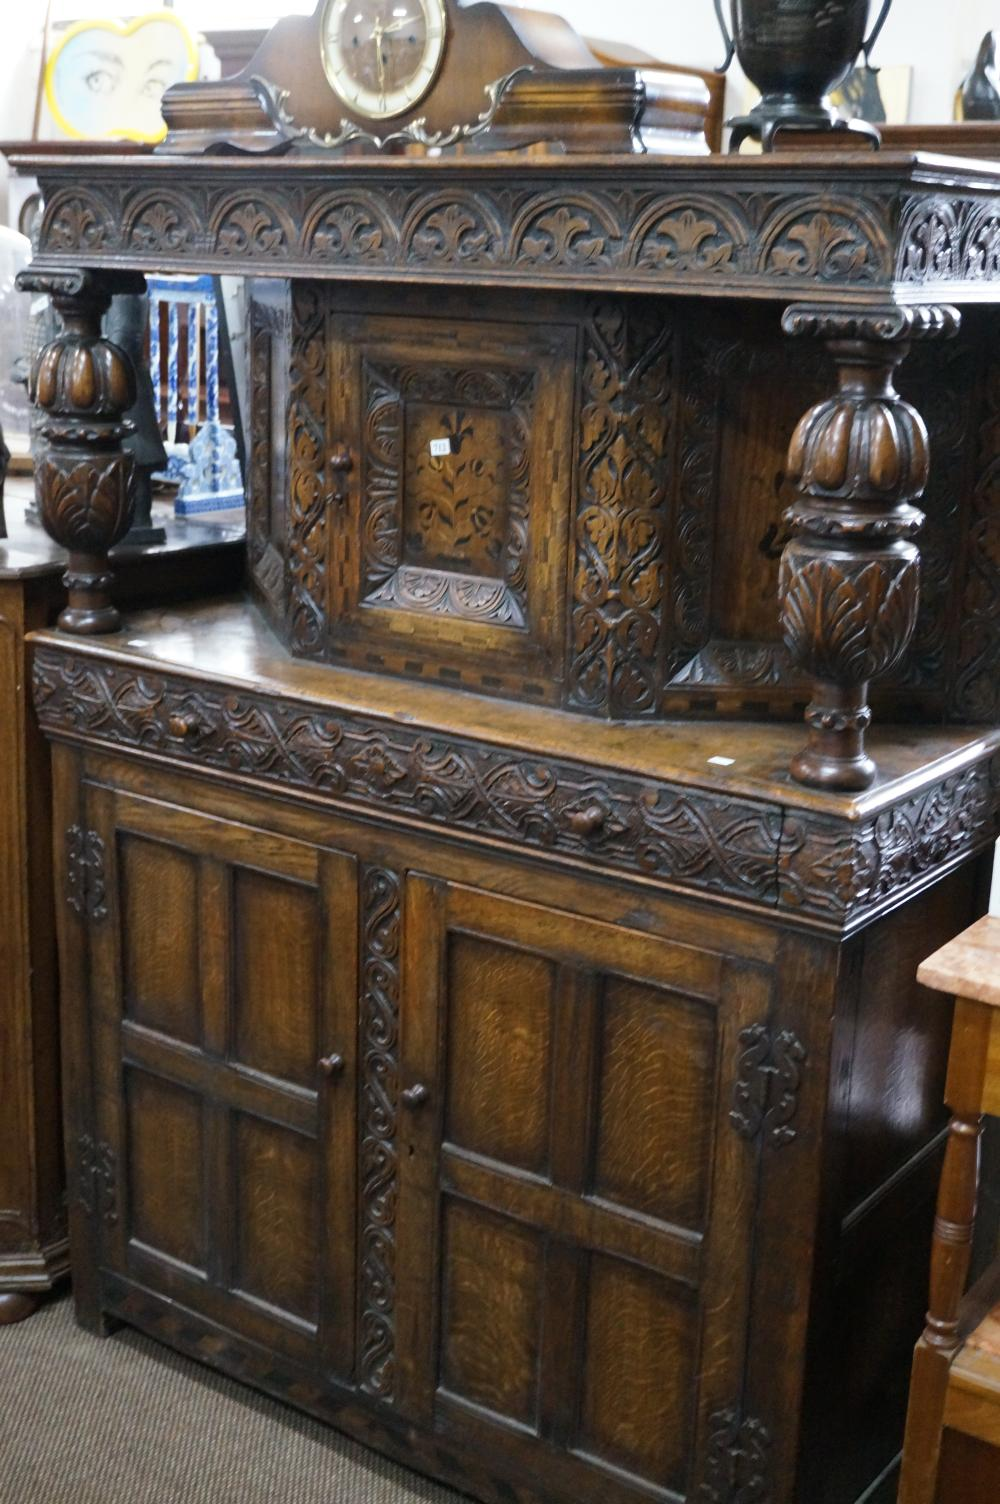 Antique carved & inlaid oak court cupboard in the Elizabethan style 122 w x 48 d x 167 cm high